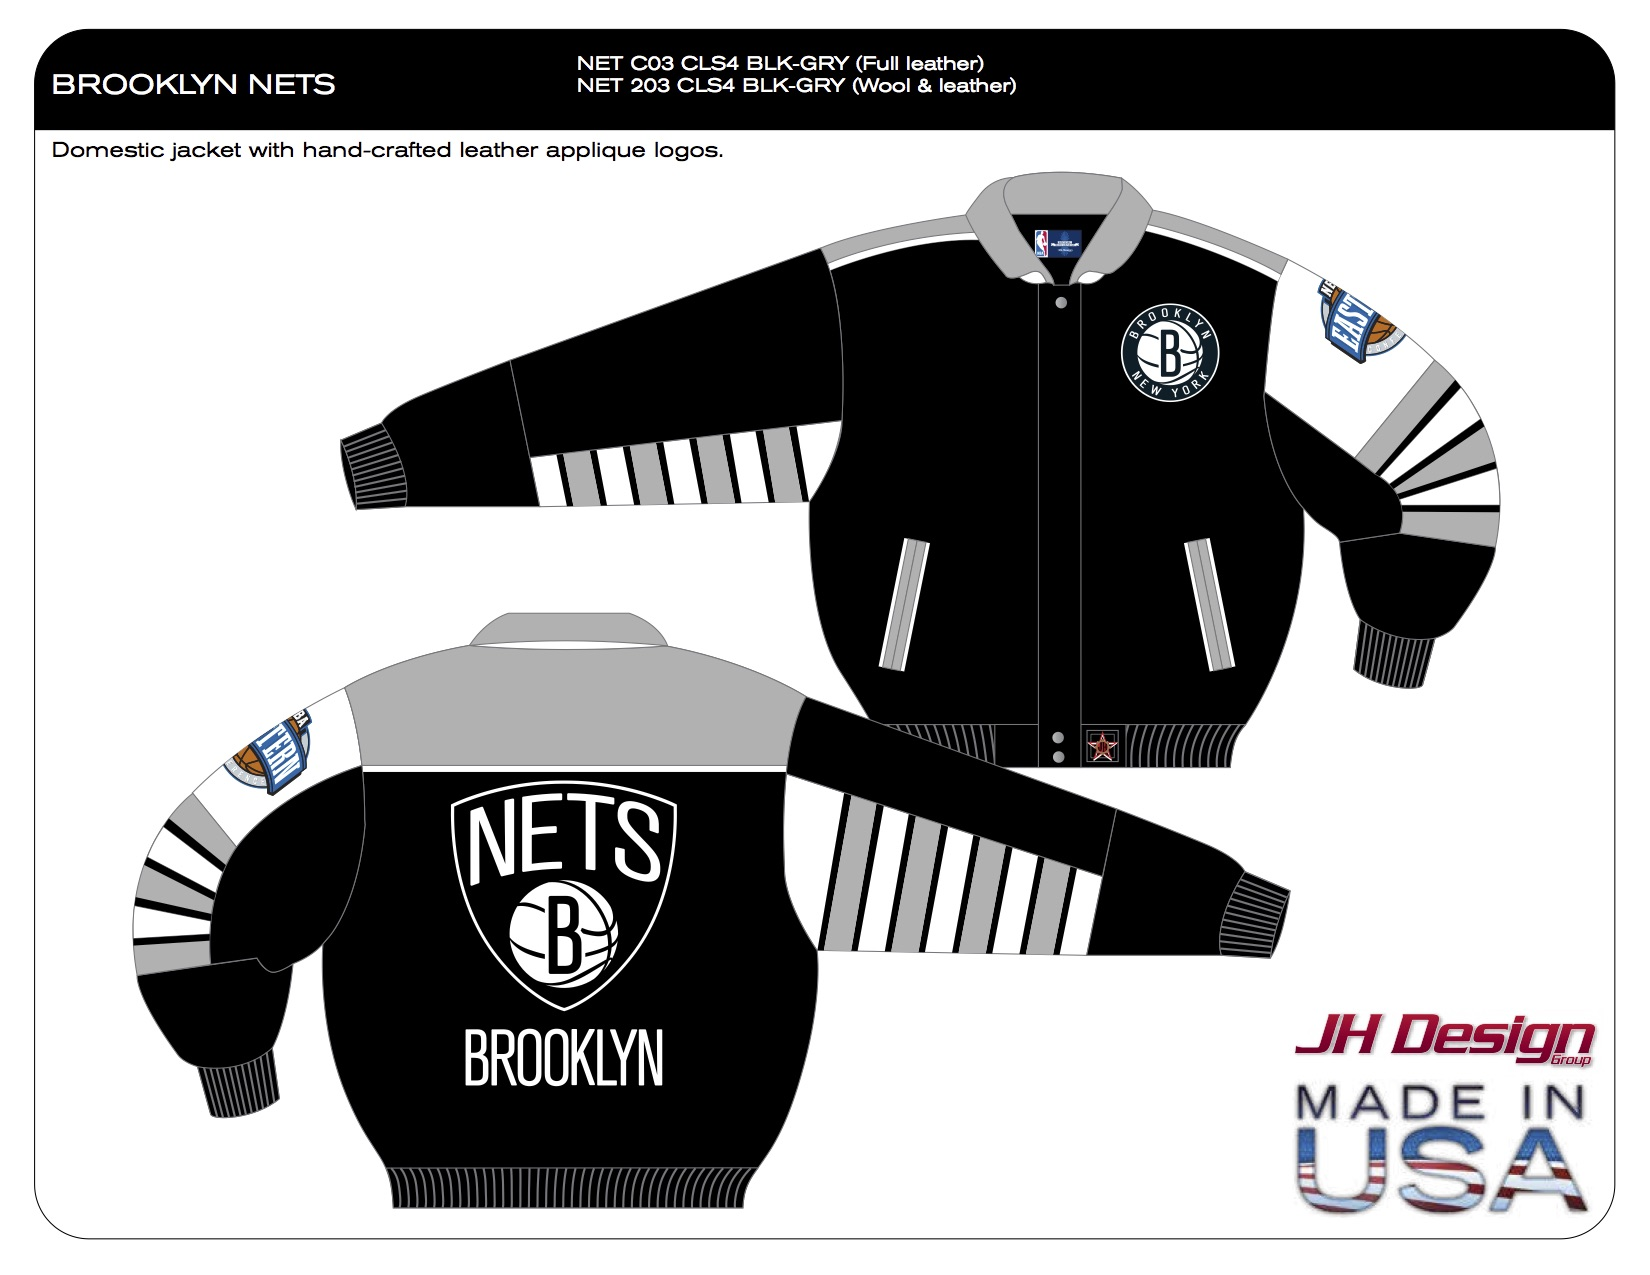 NET 203 CLS4 BLK-GRY